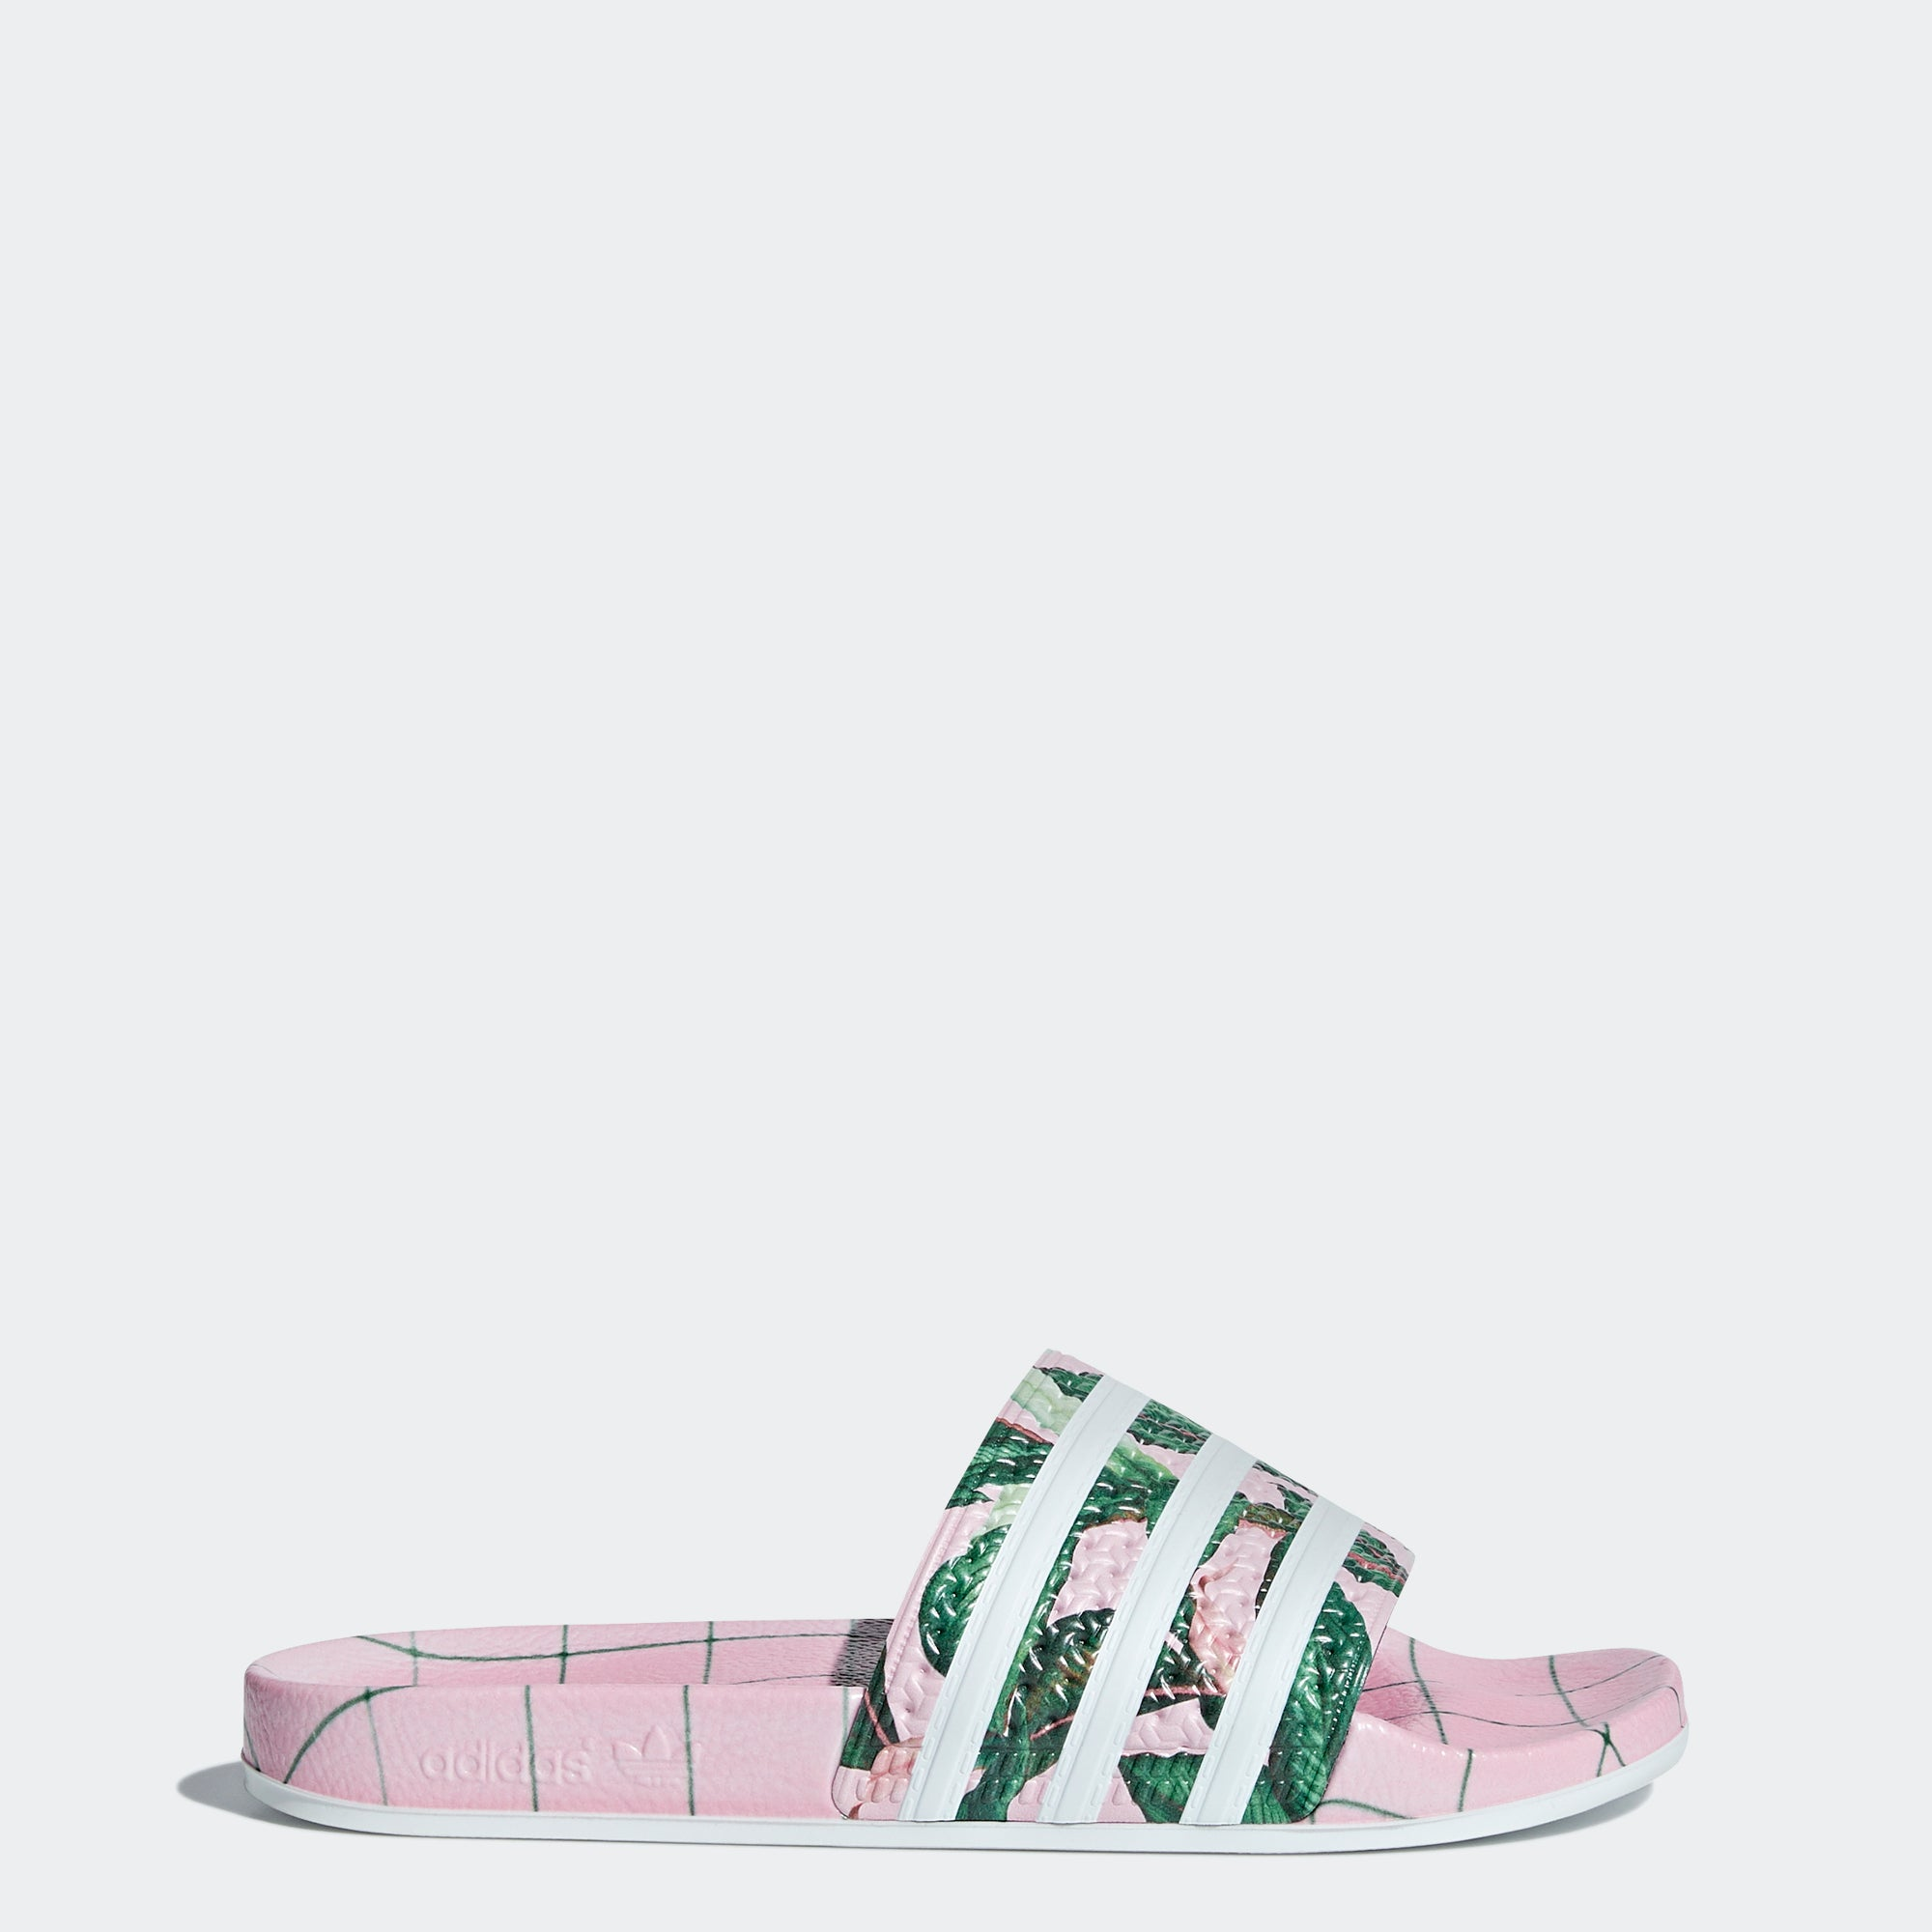 eb51994f3 Women s adidas Originals Adilette Slides Wonder Pink